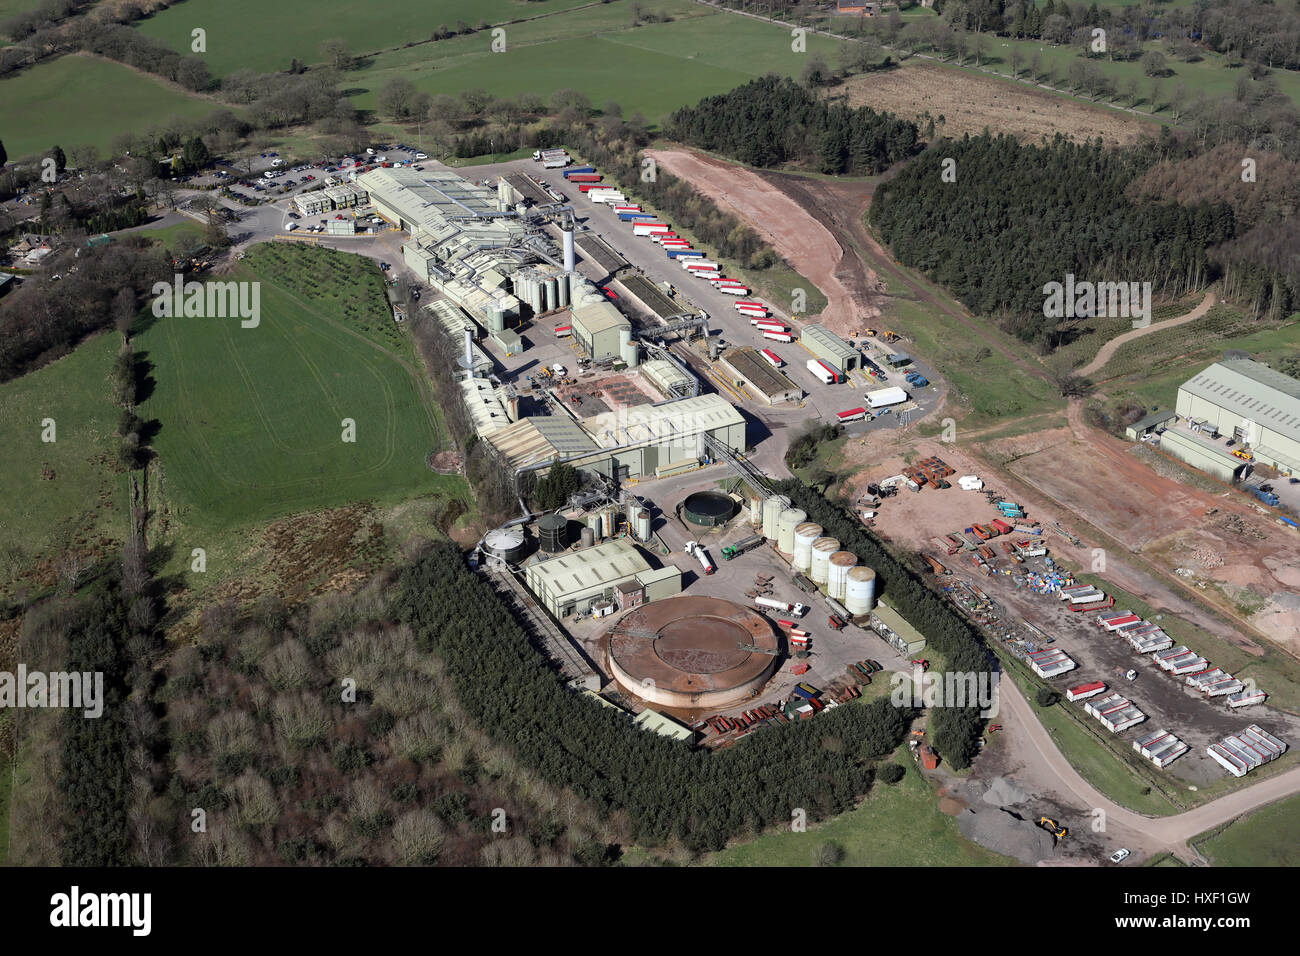 aerial view of a large factory premises in Cheshire, UK - Stock Image